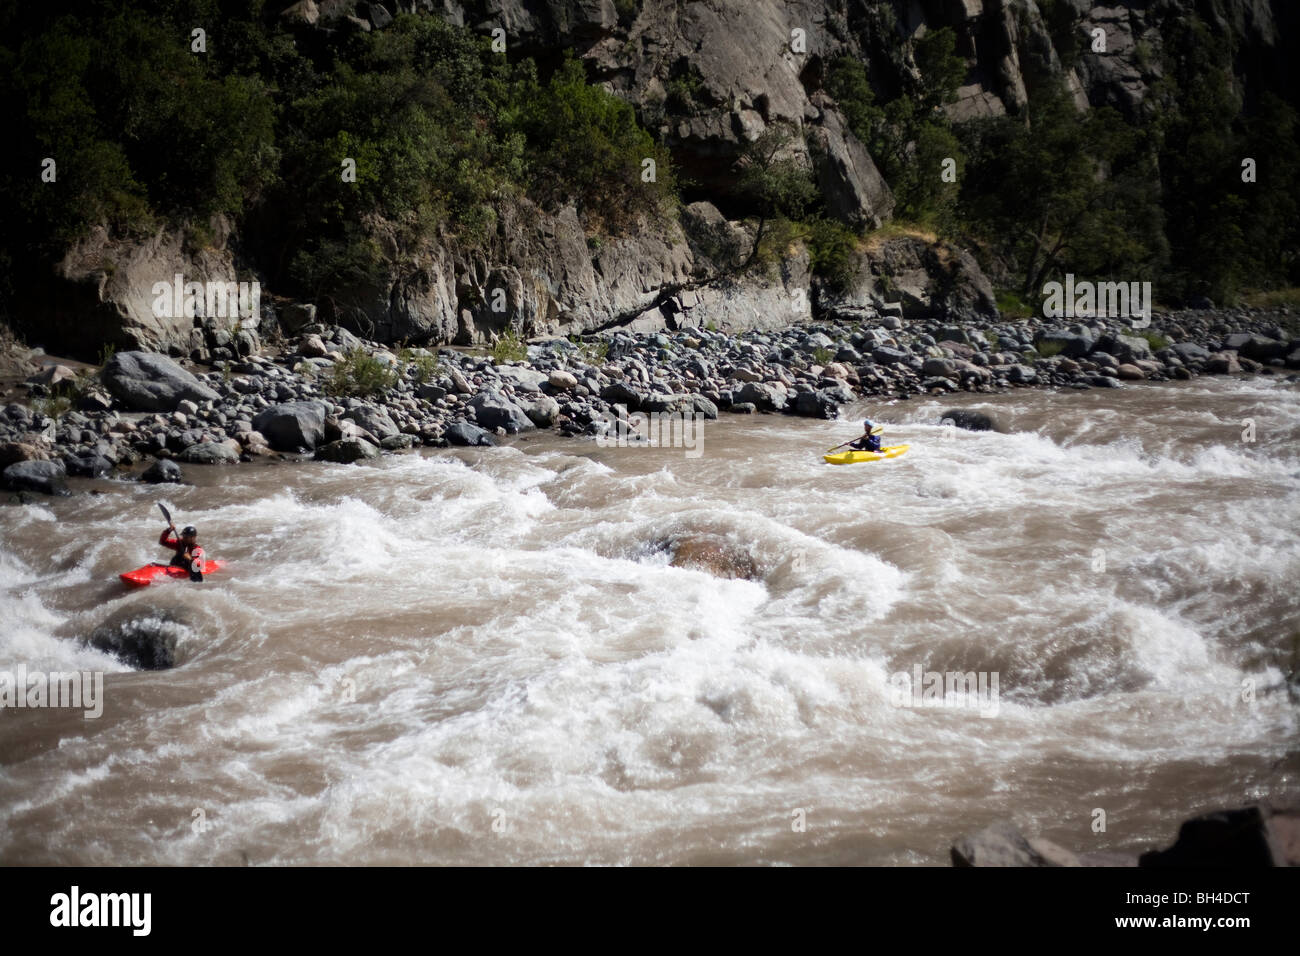 Two kayakers paddle through whitewater on a river. - Stock Image